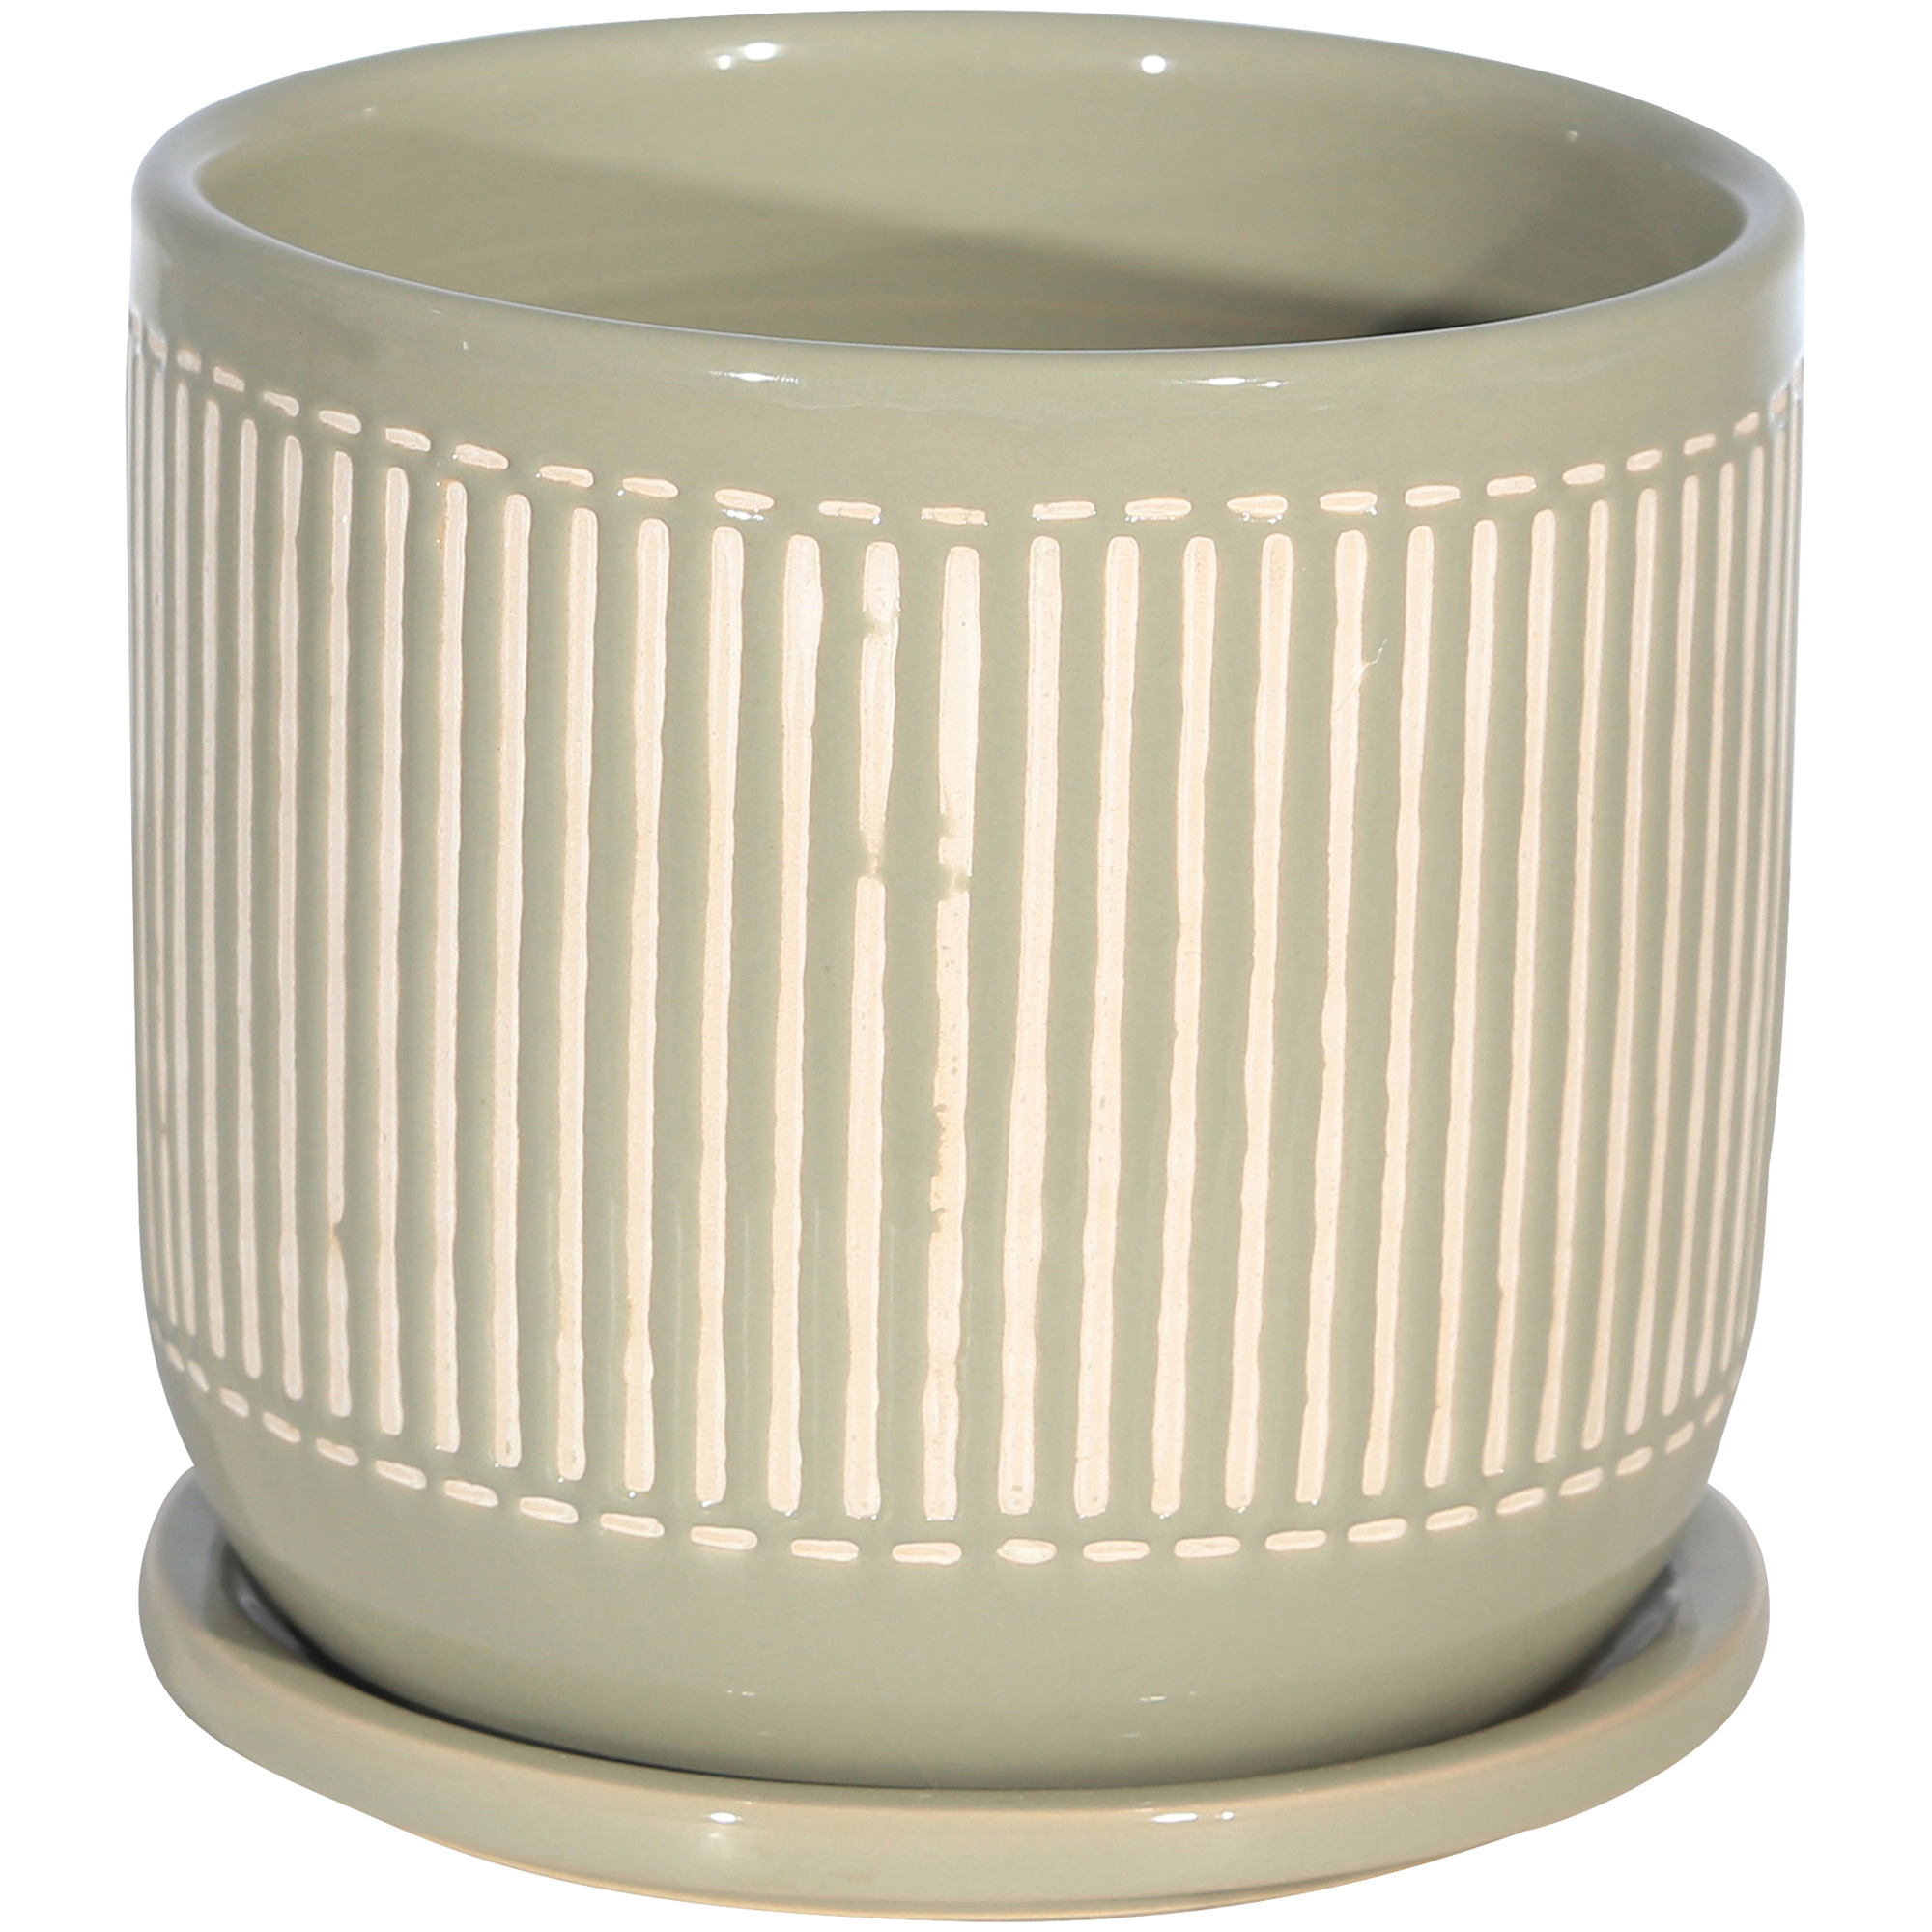 Sagebrook | Copper Ranch Gray Planter with Saucer